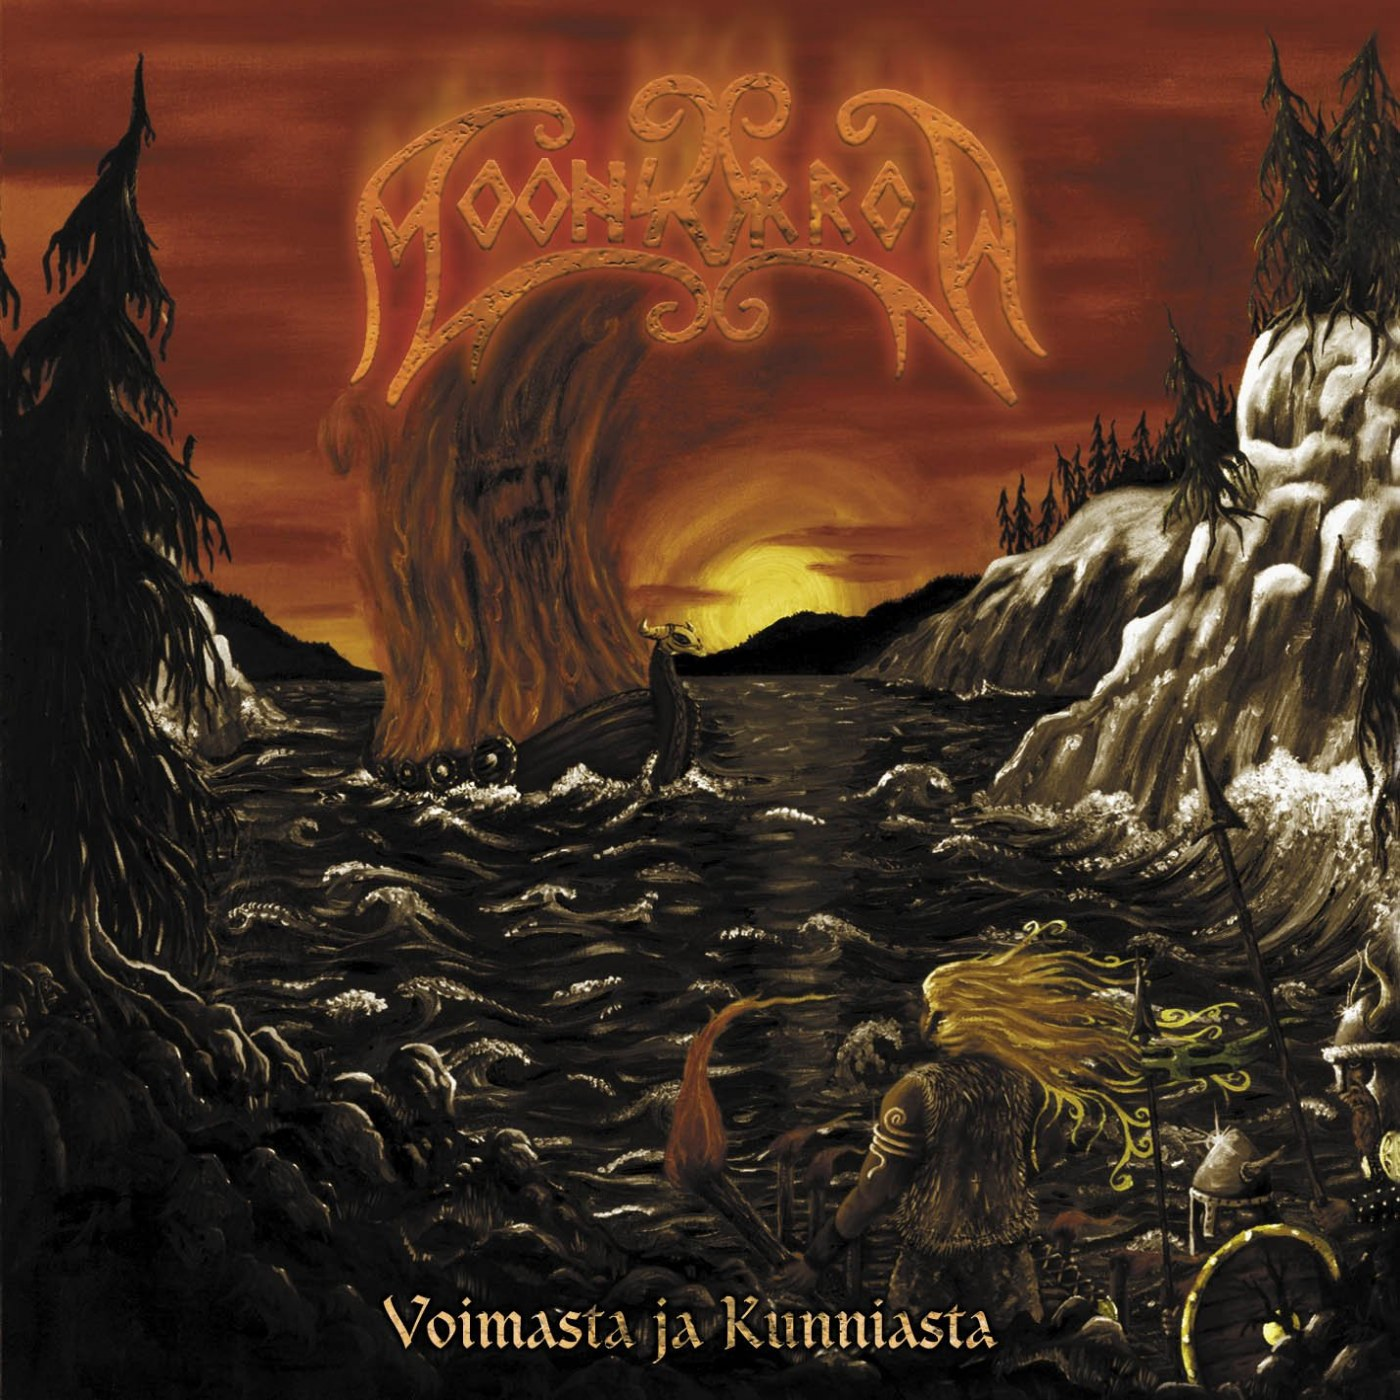 Review for Moonsorrow - Voimasta Ja Kunniasta